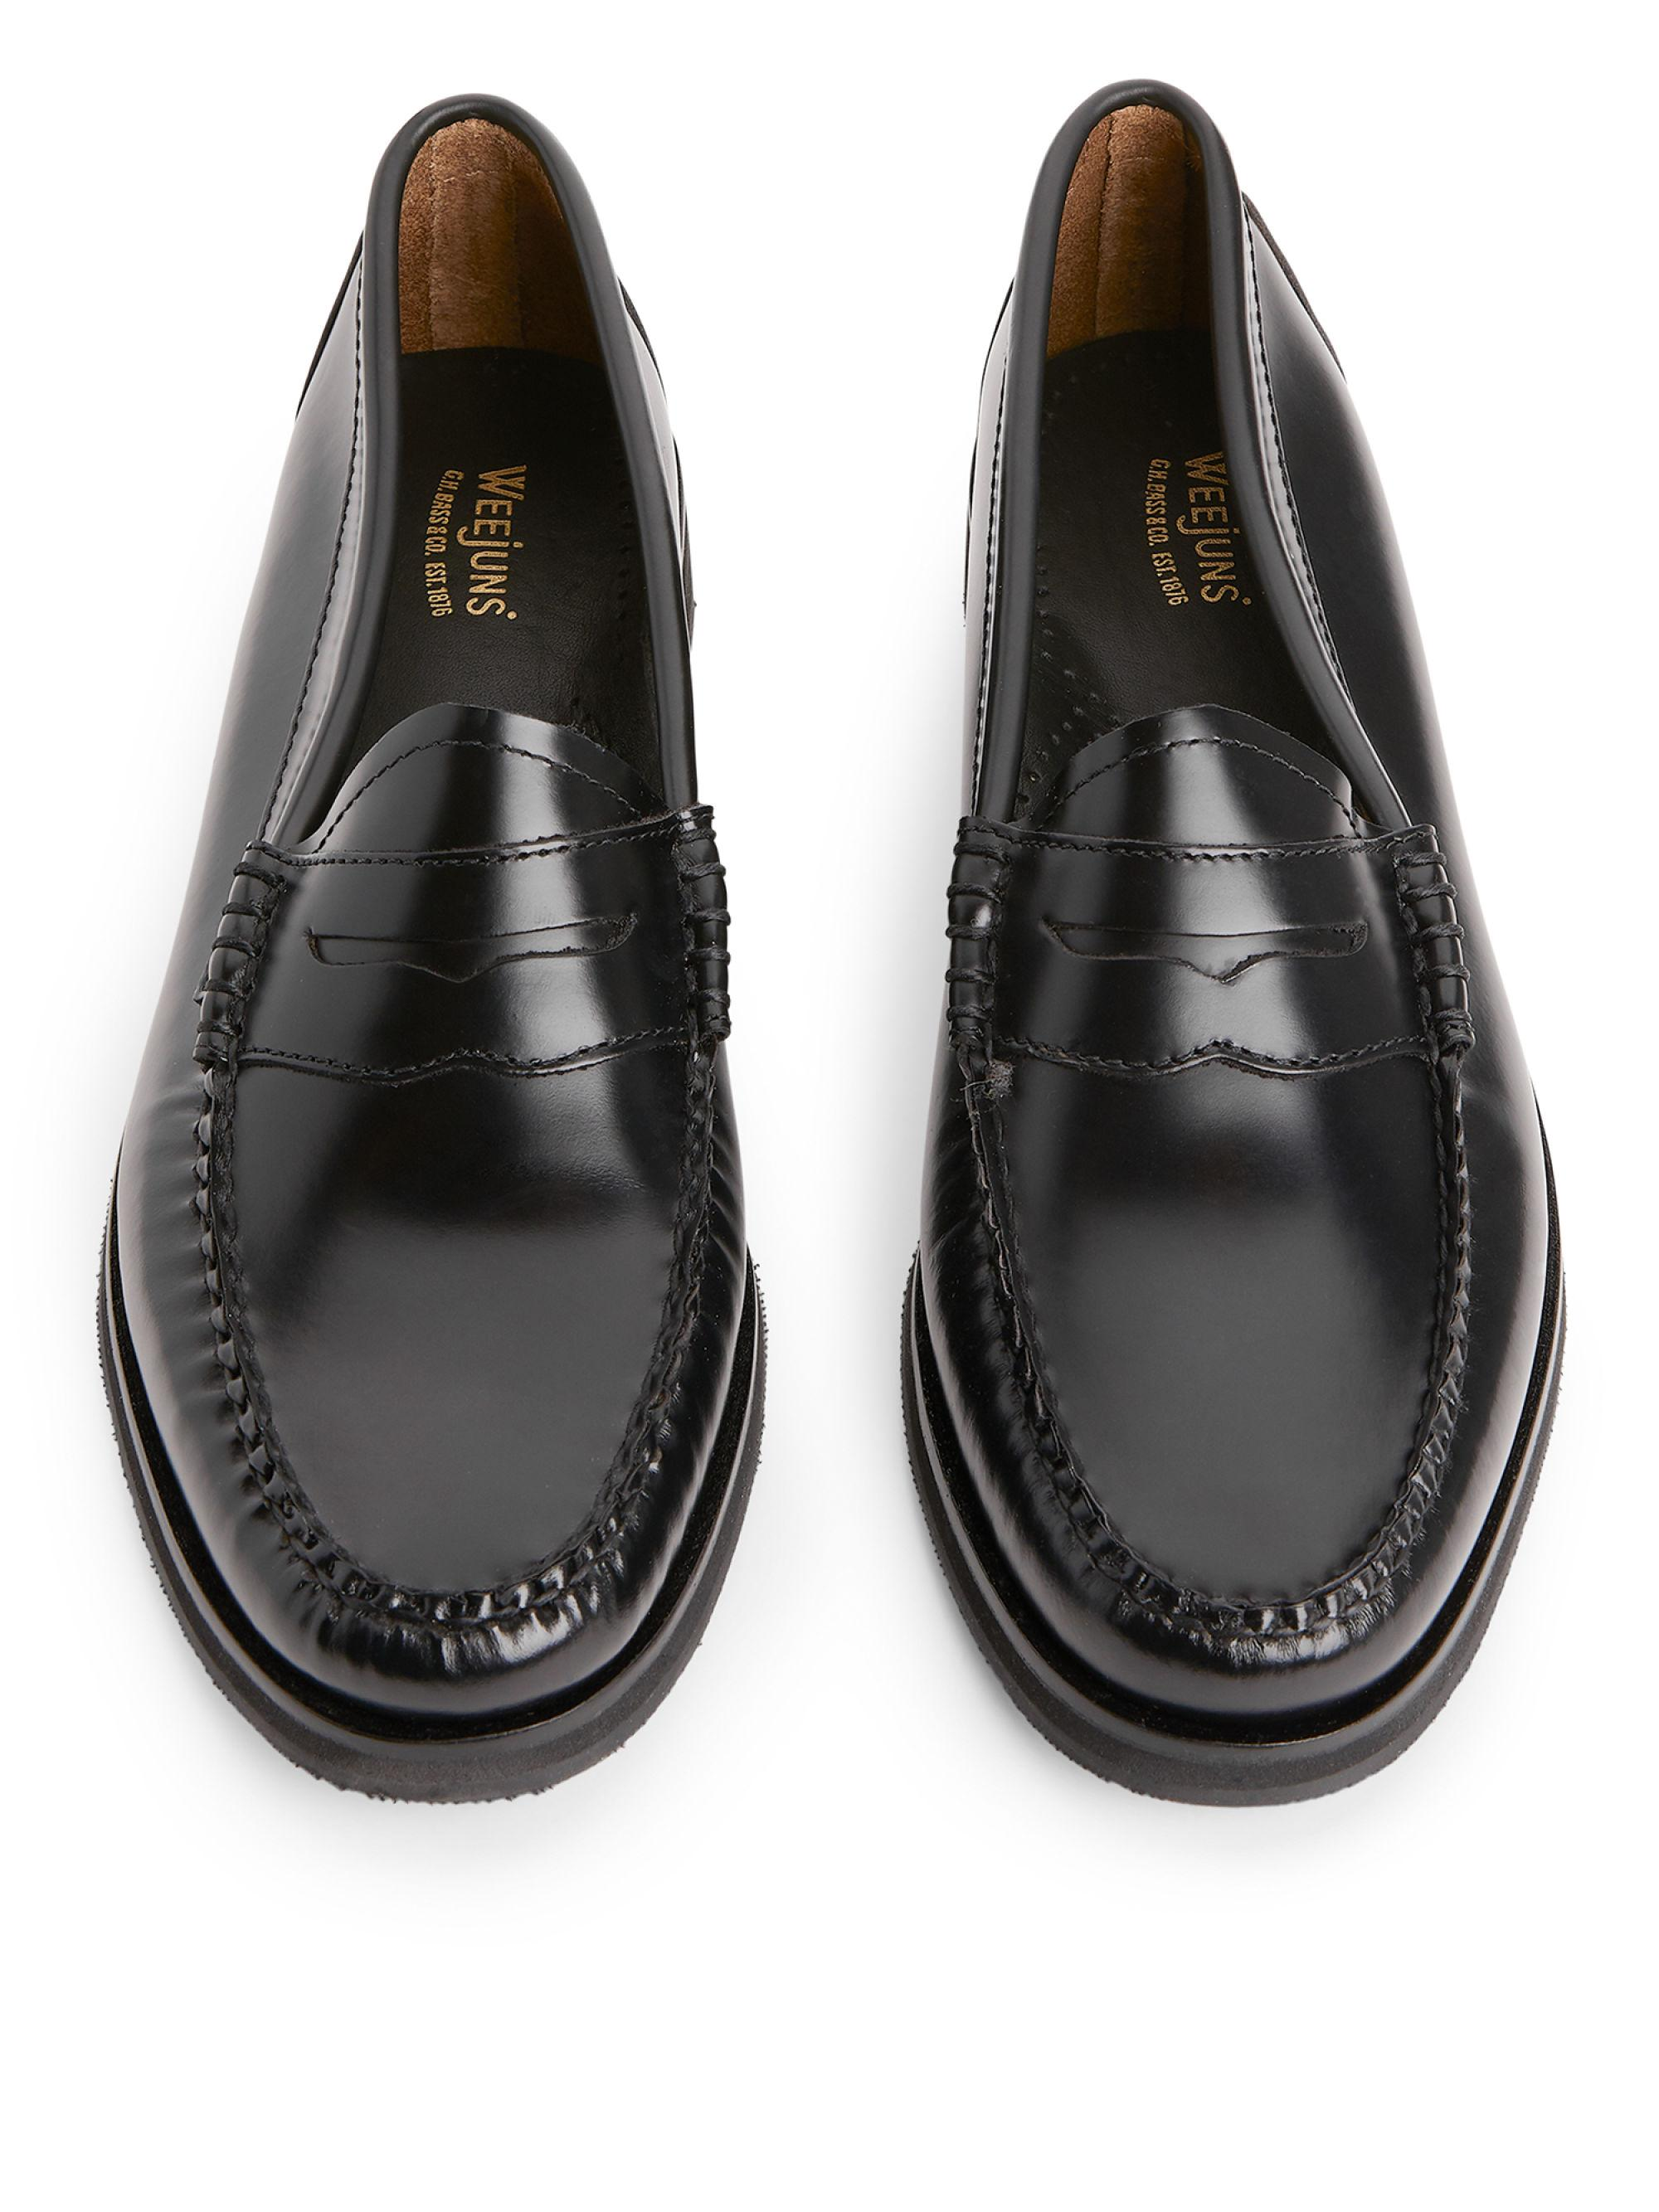 58ad82a59d4 ARKET G.h Bass Weejuns Penny Winter Loafer in Black - Lyst